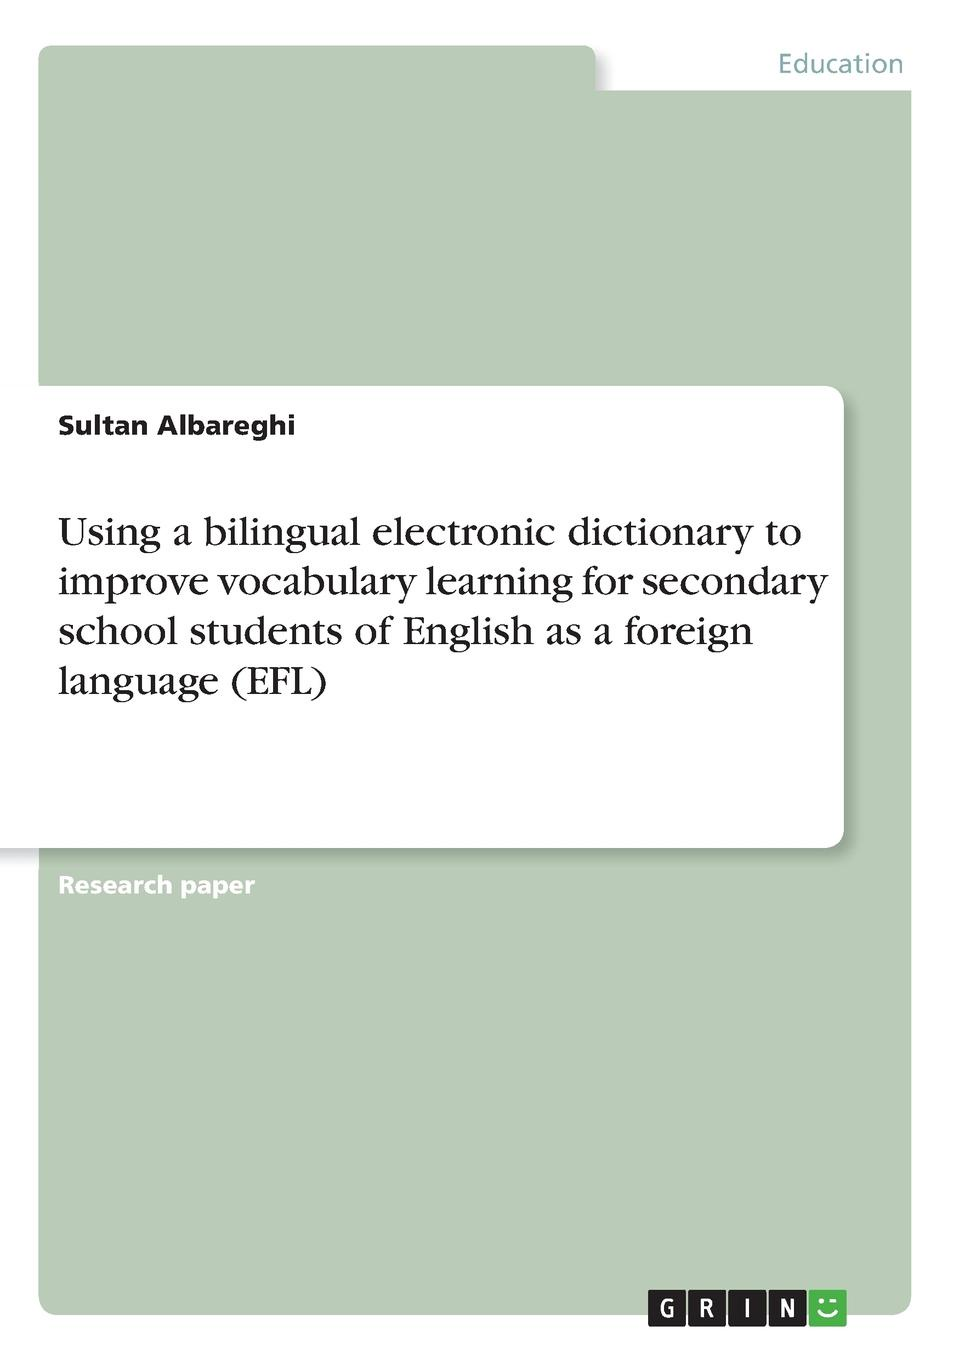 Sultan Albareghi Using a bilingual electronic dictionary to improve vocabulary learning for secondary school students of English as a foreign language (EFL) learning english language via snss and students academic self efficacy